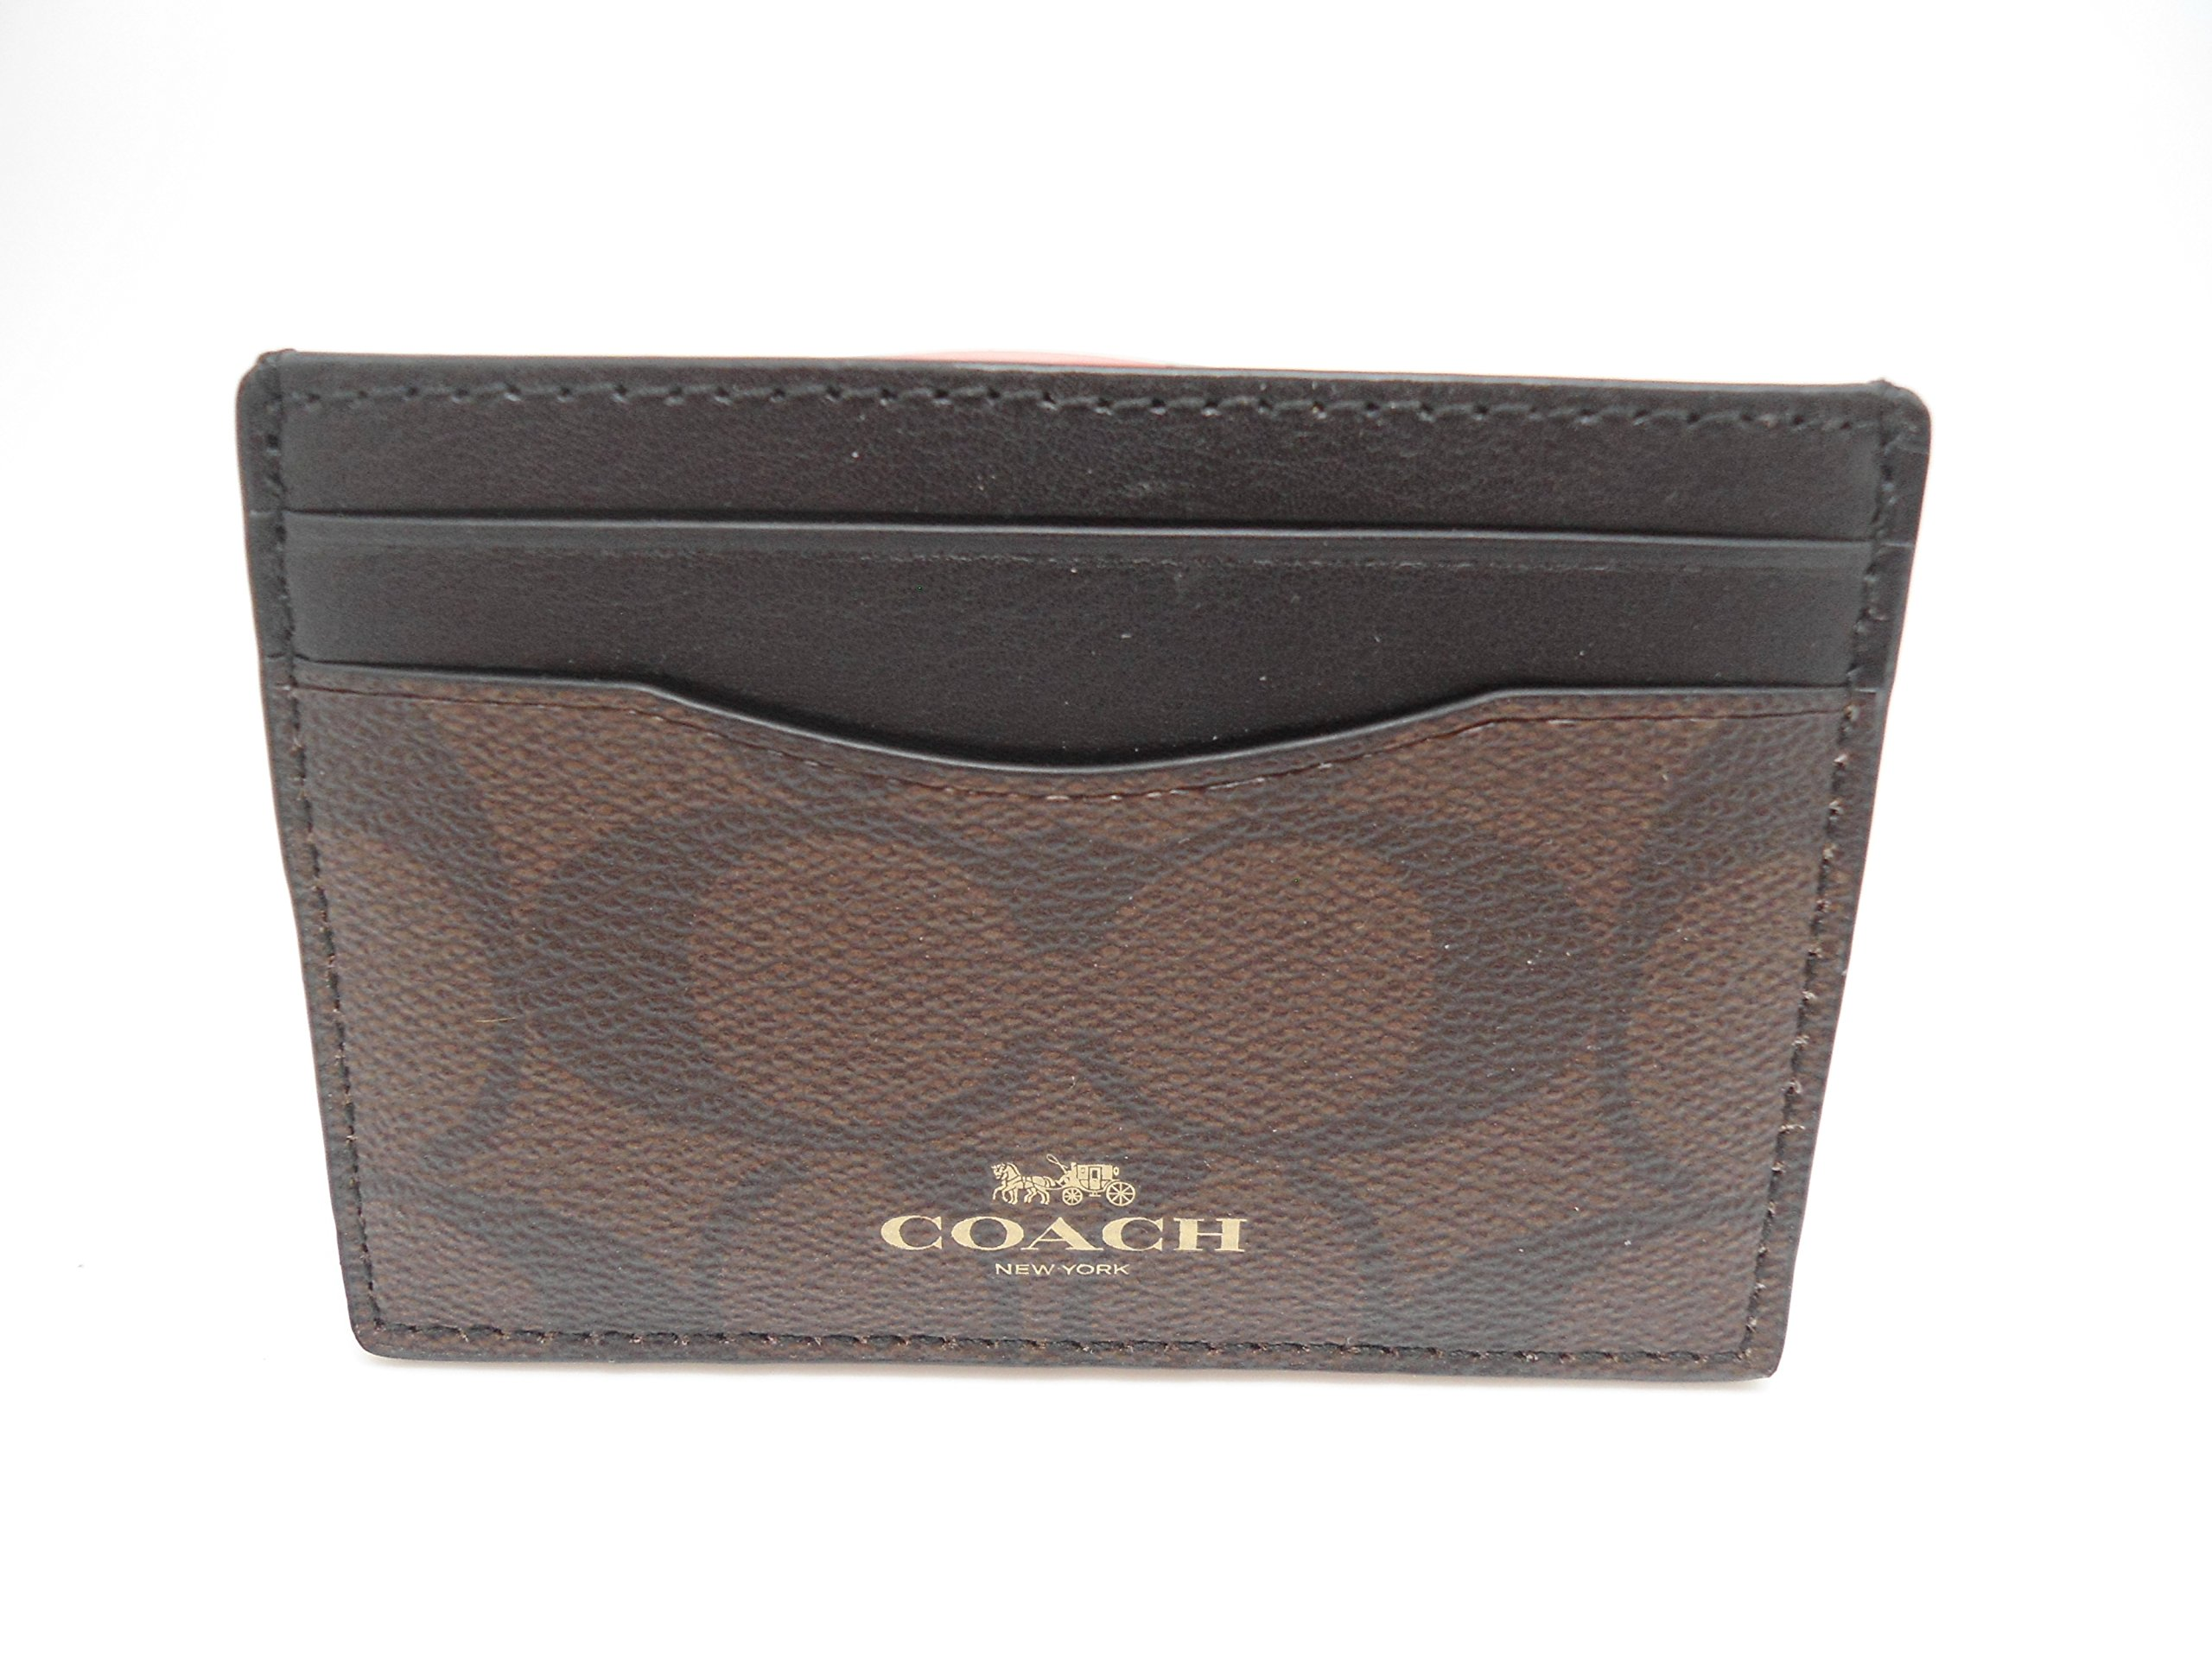 Coach Signature PVC Card Case Brown Black F63279IMAA8, Medium by Coach